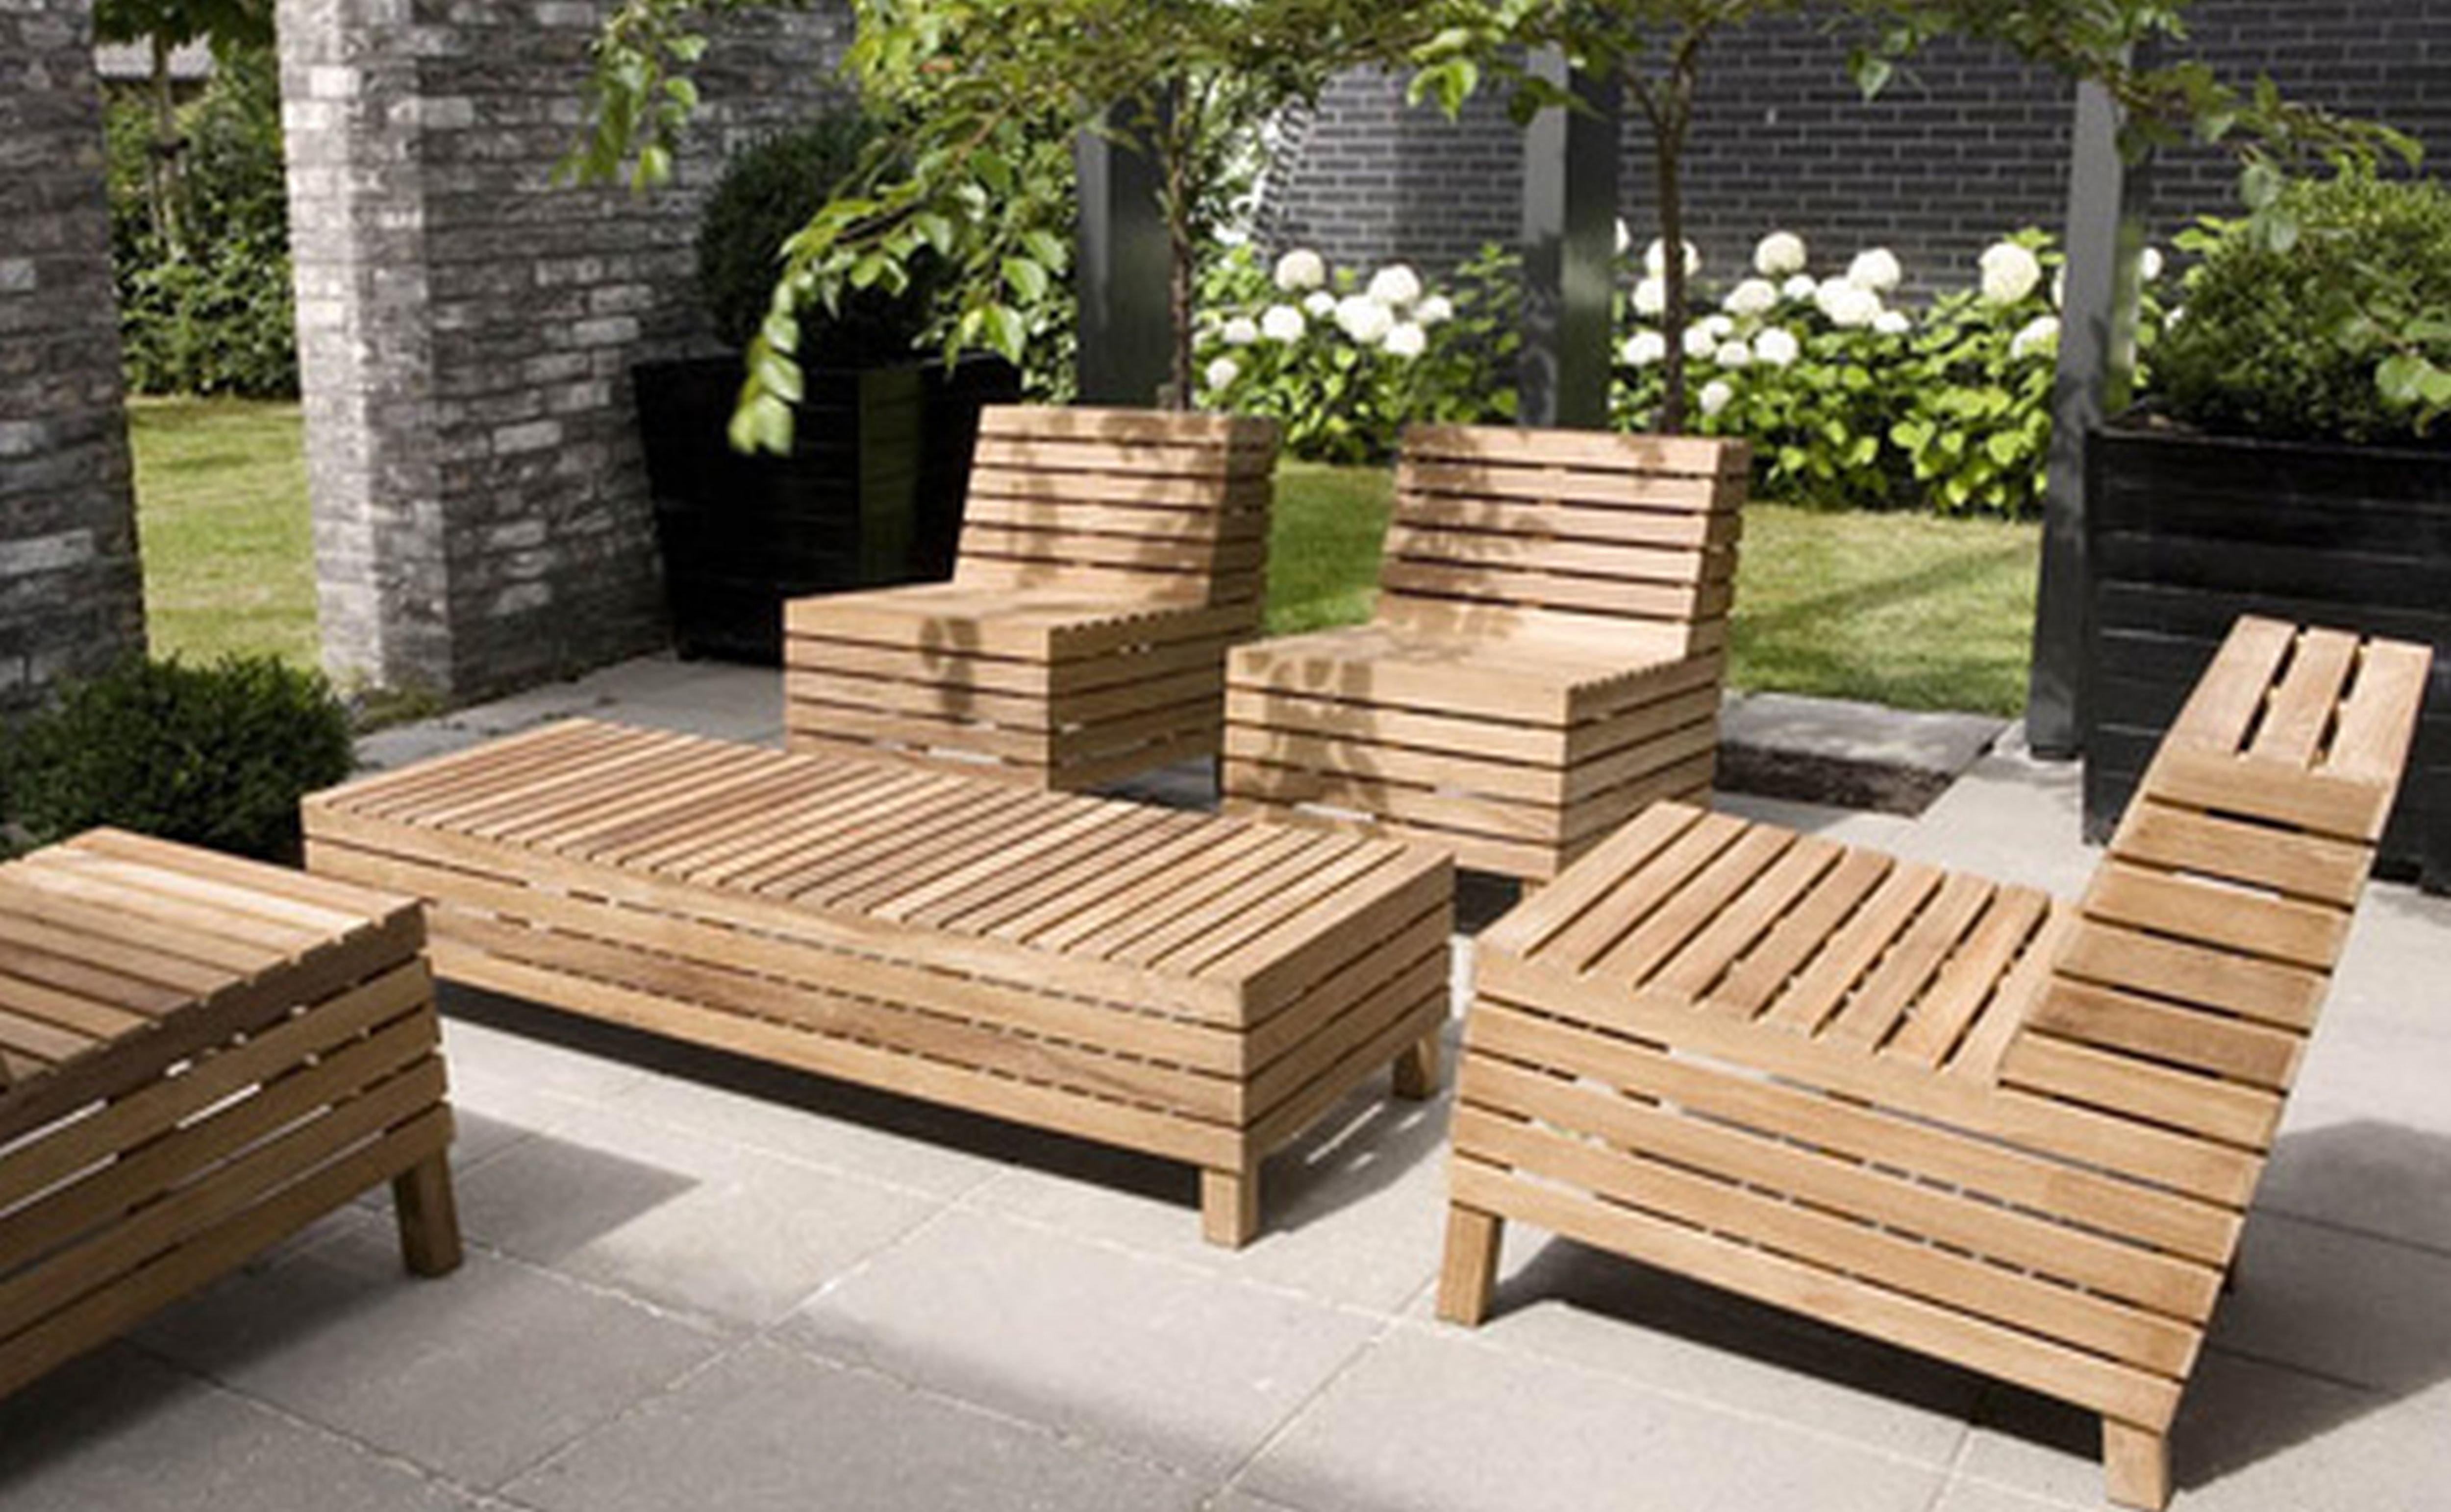 Applying the modernity from the outside by purchasing the for Outdoor garden furniture